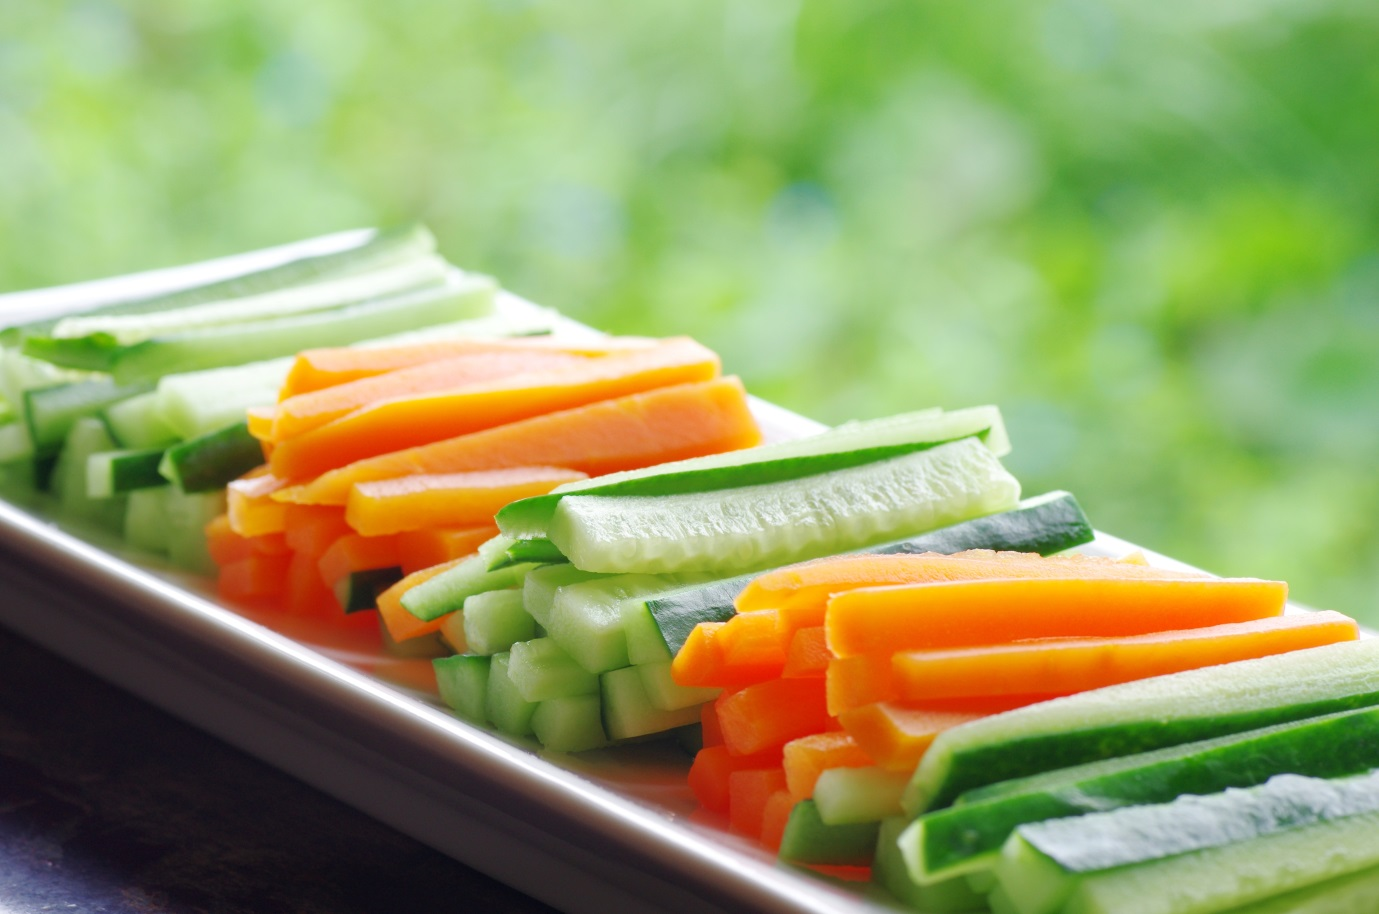 cucumber and carrot picnic